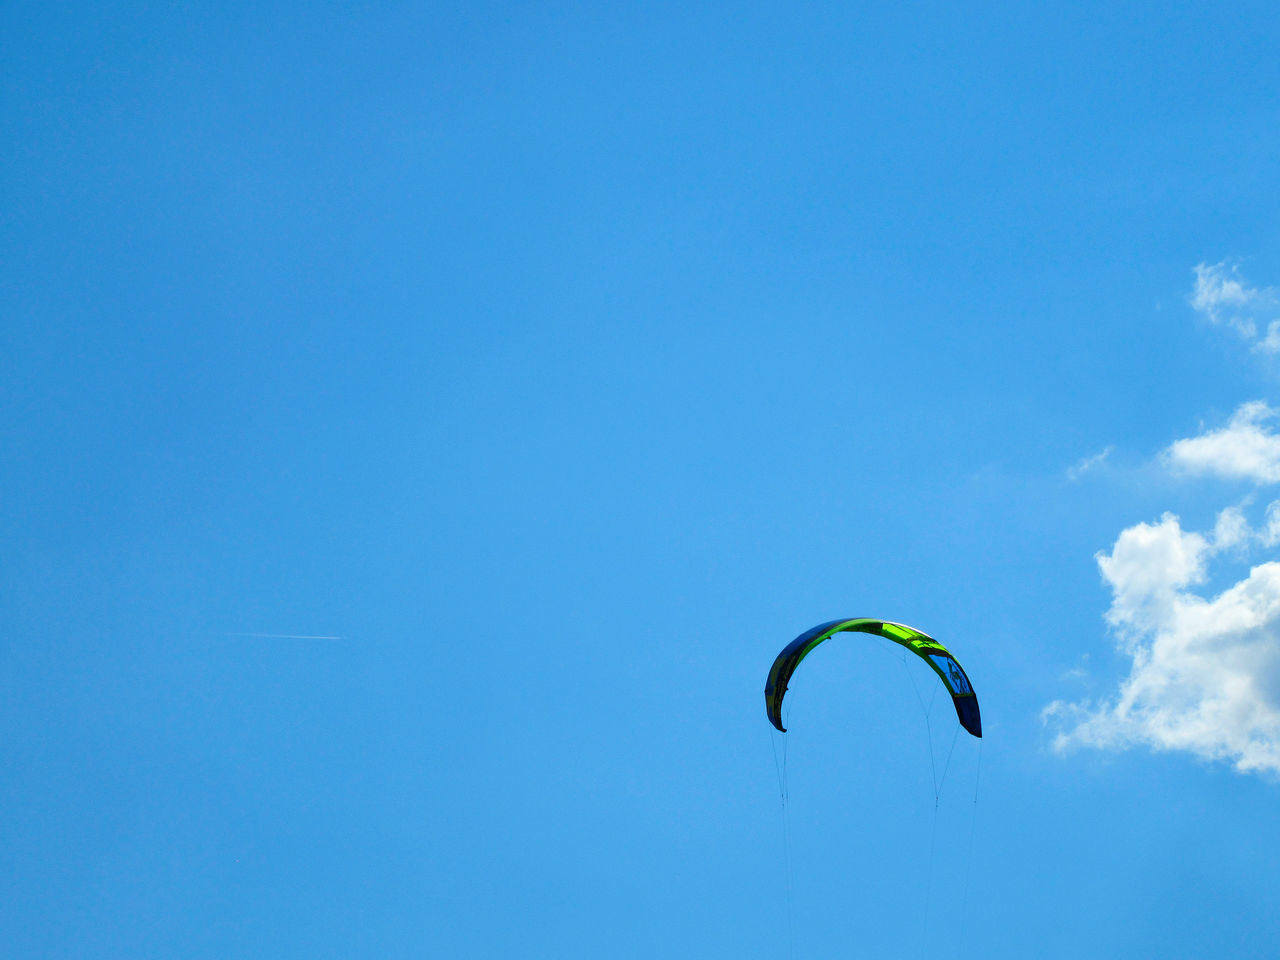 Kite surf over clear blue sky Adventure Beauty In Nature Blue Clear Sky Copy Space Copy Space Day Extreme Sports Flying Kitesurfing Leisure Activity Lifestyles Low Angle View Mid-air Nature One Person Outdoors Parachute Paragliding People Real People Sky Sport